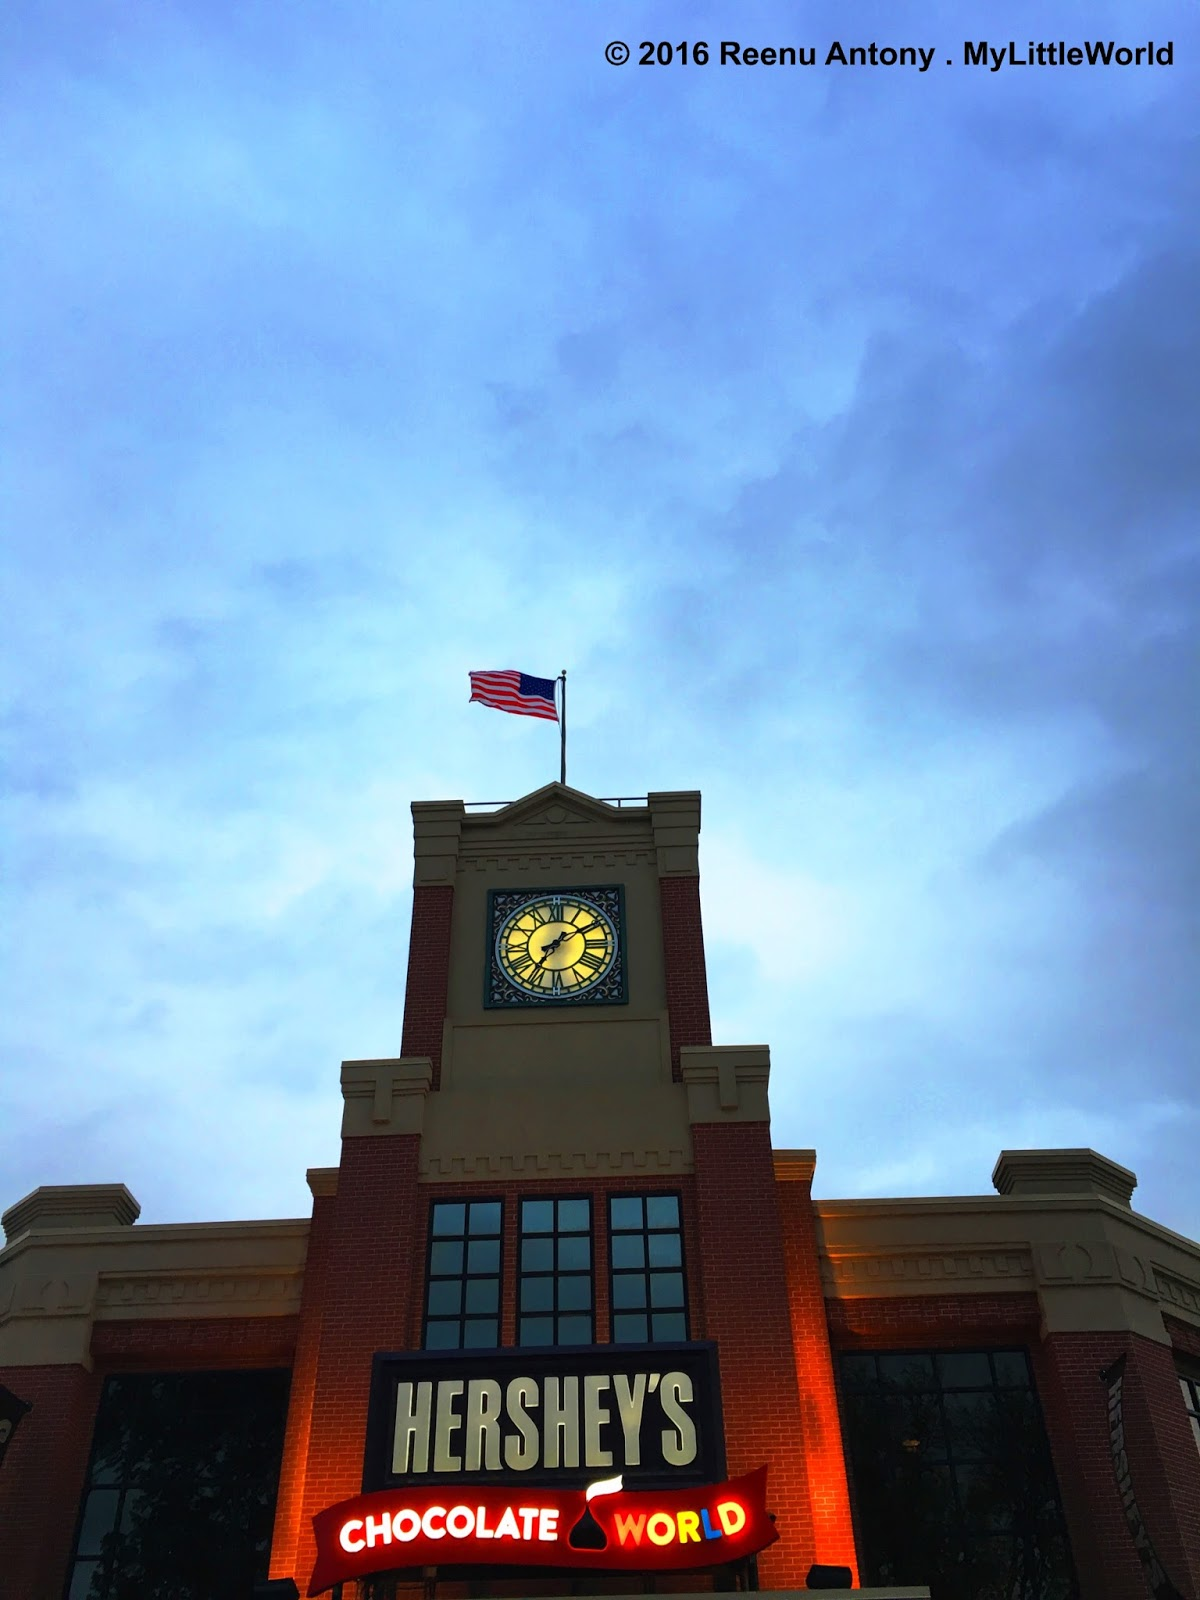 Worksheet Hershey Chocolate Company History hersheys chocolate world pennsylvania my little the center of universe two story redbrick delves into companys his